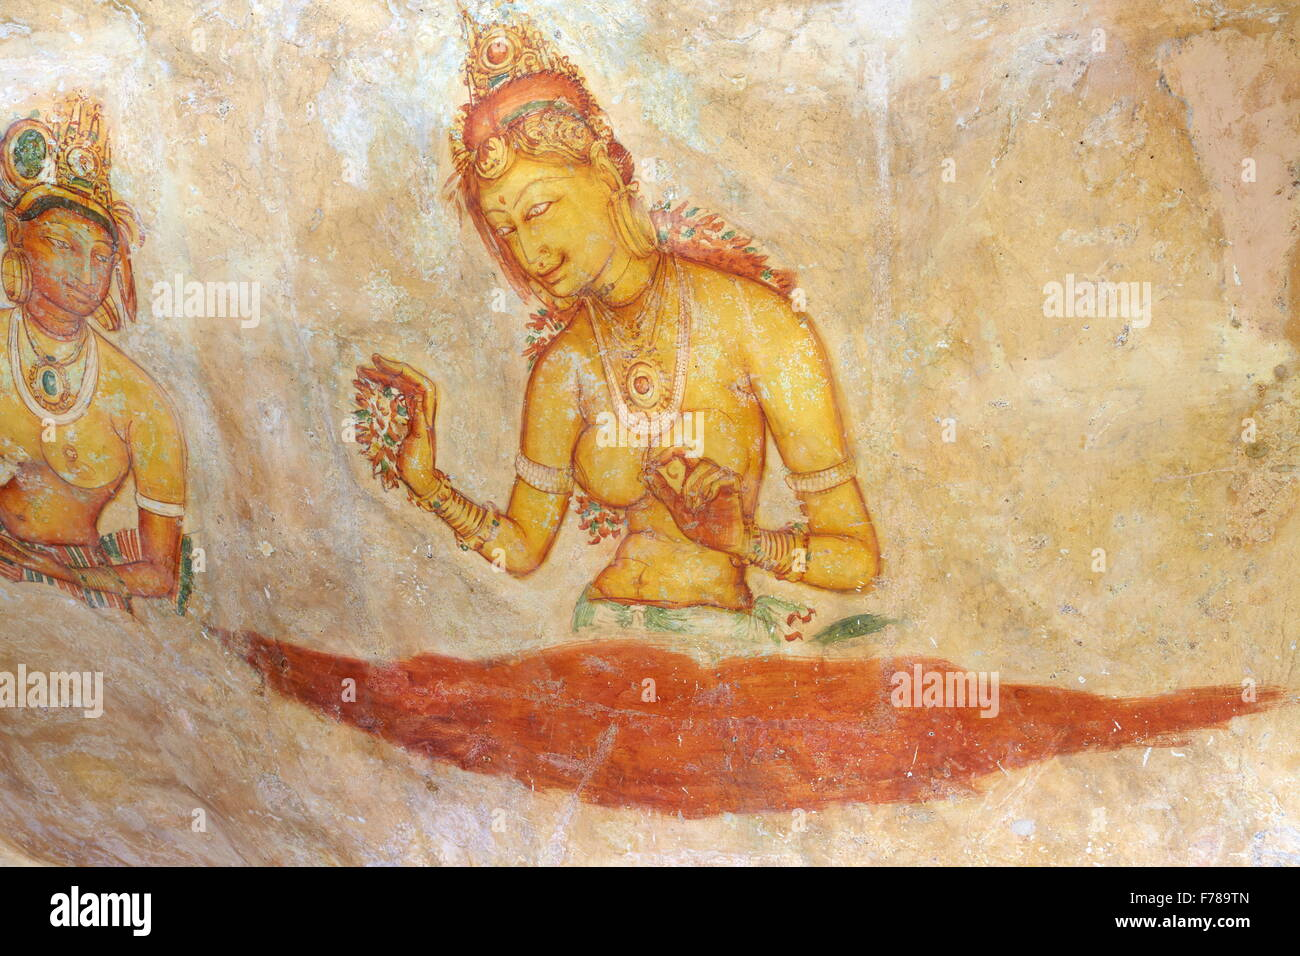 Sri Lanka - Sigiriya, ancient frescoes at cave wall inside Sigiriya ...